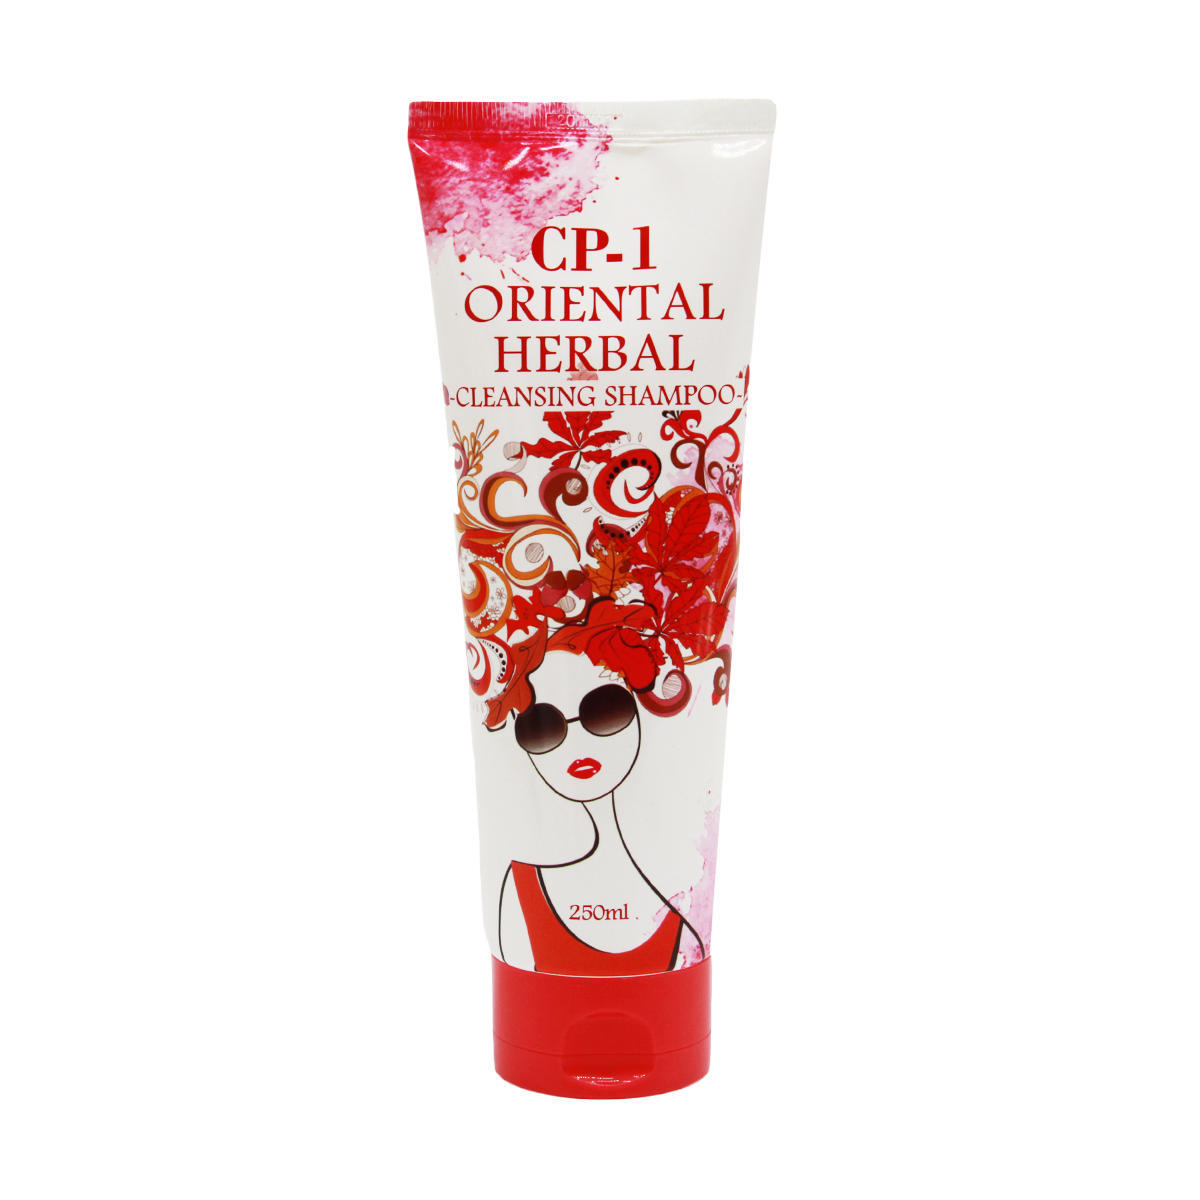 Уход за волосами Шампунь для волос Esthetic House CP-1 Oriental Herbal Cleansing Shampoo, 250 мл import_files_8f_8f734c045b2c11e980fb3408042974b1_8f734c055b2c11e980fb3408042974b1.jpg